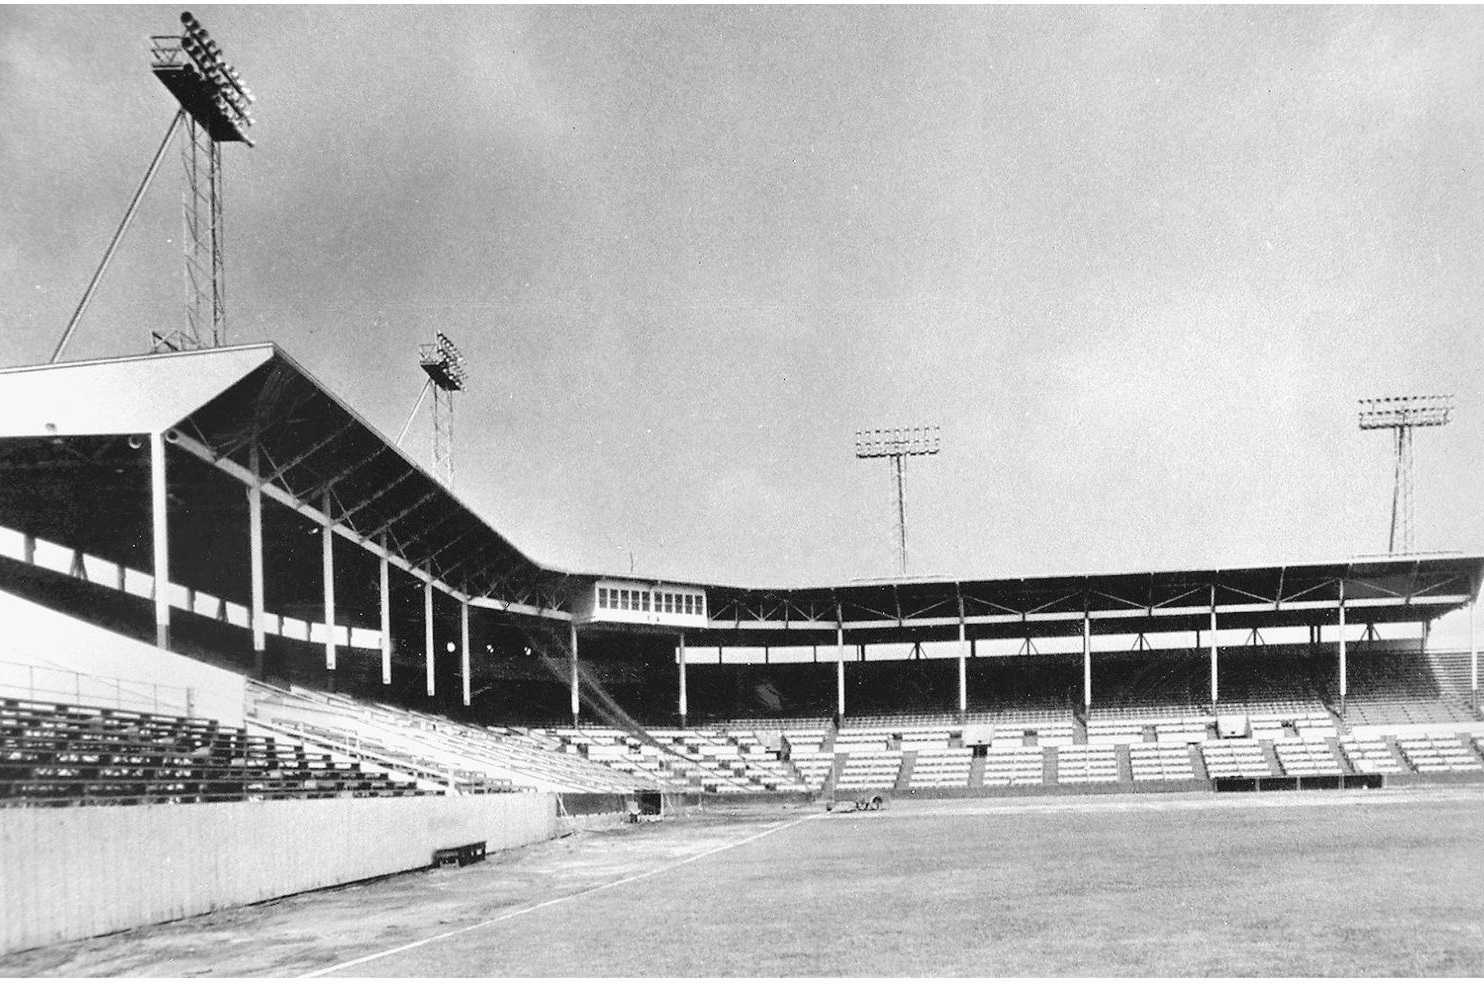 A shot of empty Gilmore Field, showing how close the fans were to the action on the field. Photo by Jerry Mezerow via  The Hollywood Stars  (c. 1940s).